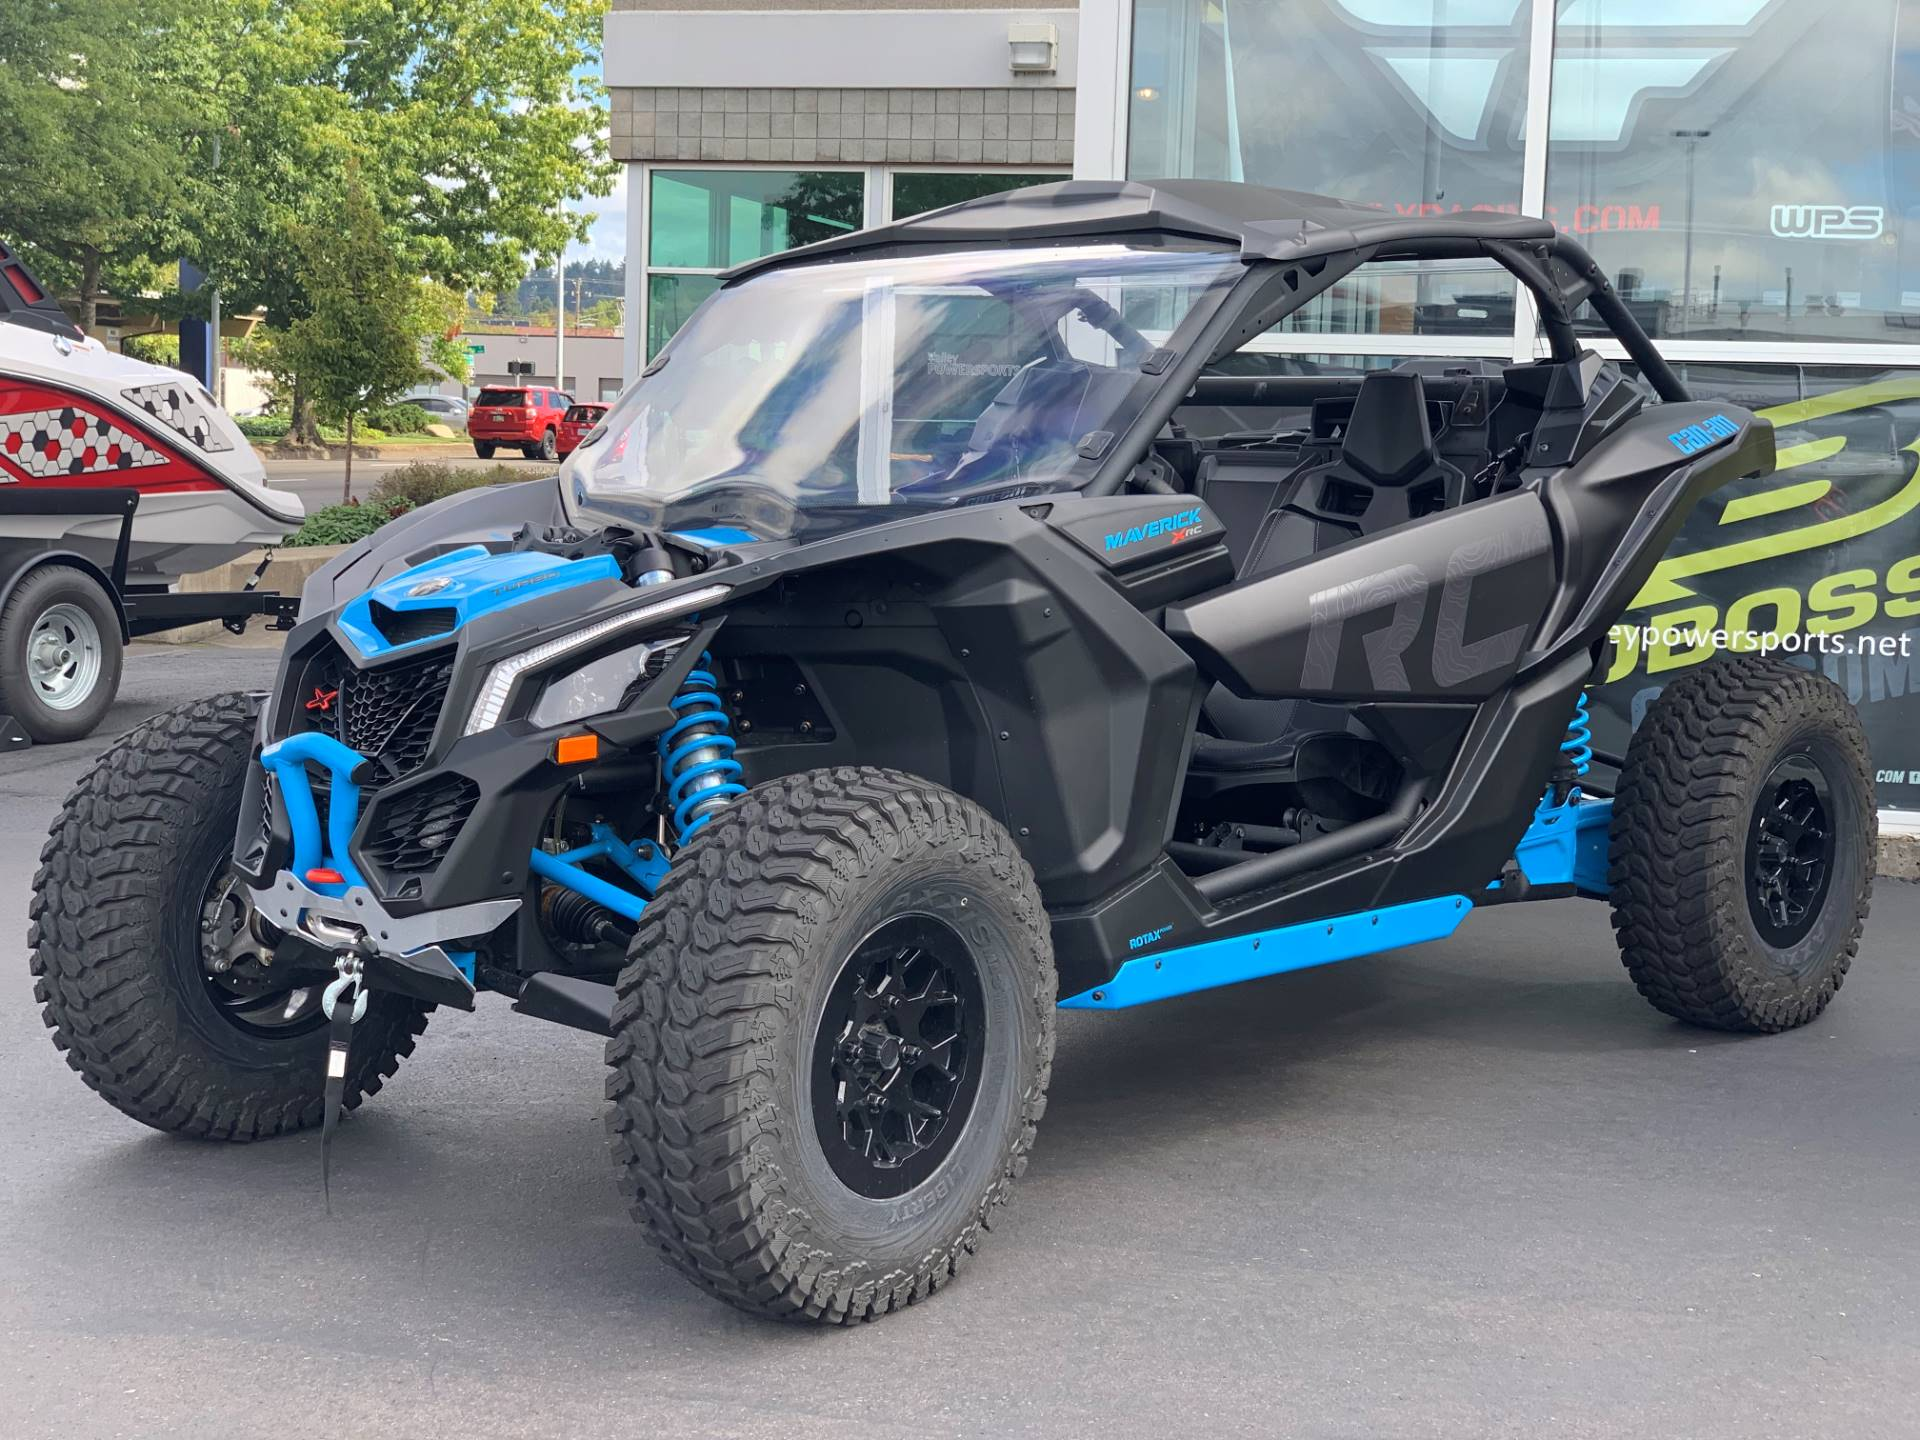 2019 Can-Am Maverick X3 X rc Turbo in Eugene, Oregon - Photo 3